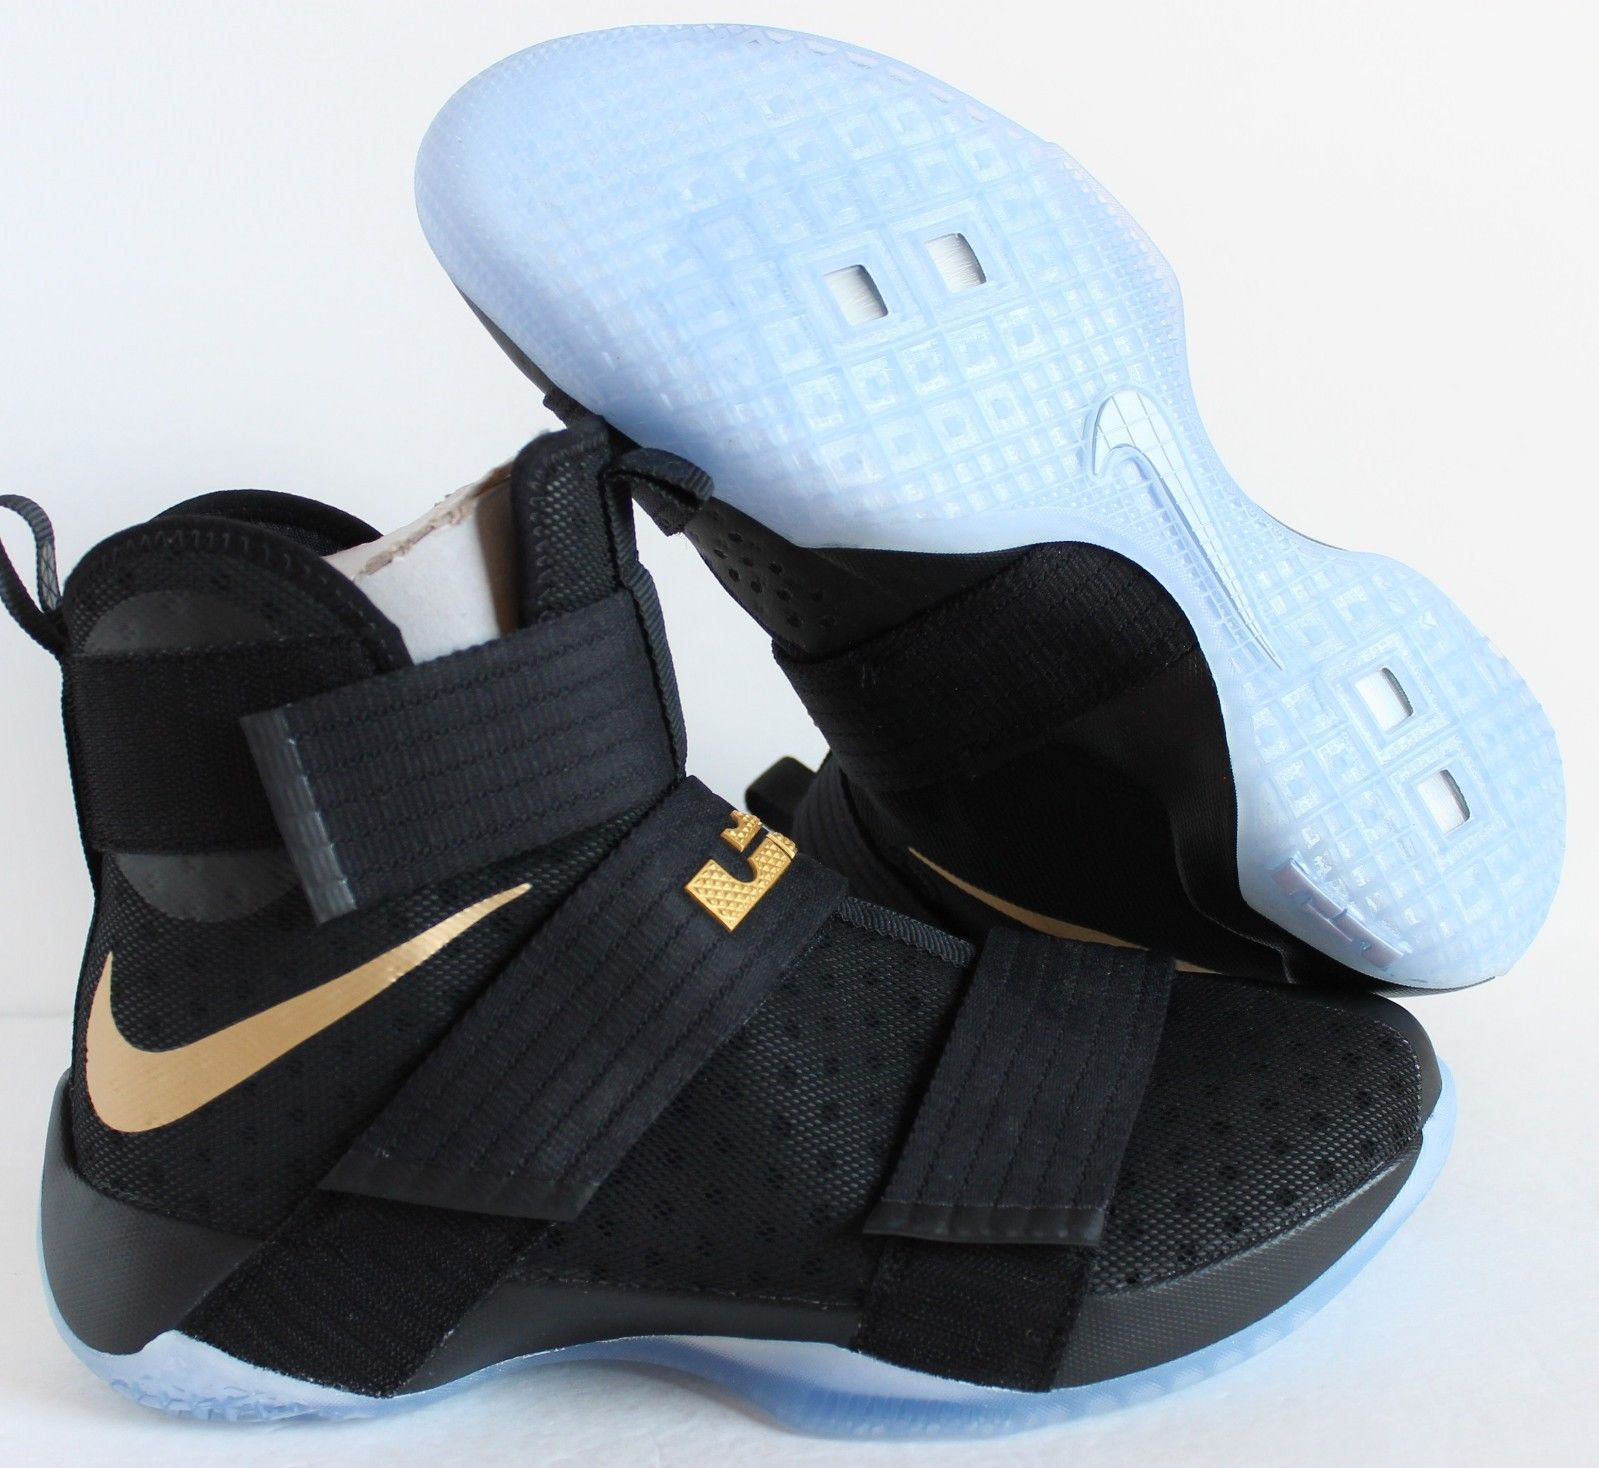 NIKE iD ZOOM LEBRON SOLDIER 10 CHAMPIONSHIP BLACK GOLD SZ 10 [885682-991]